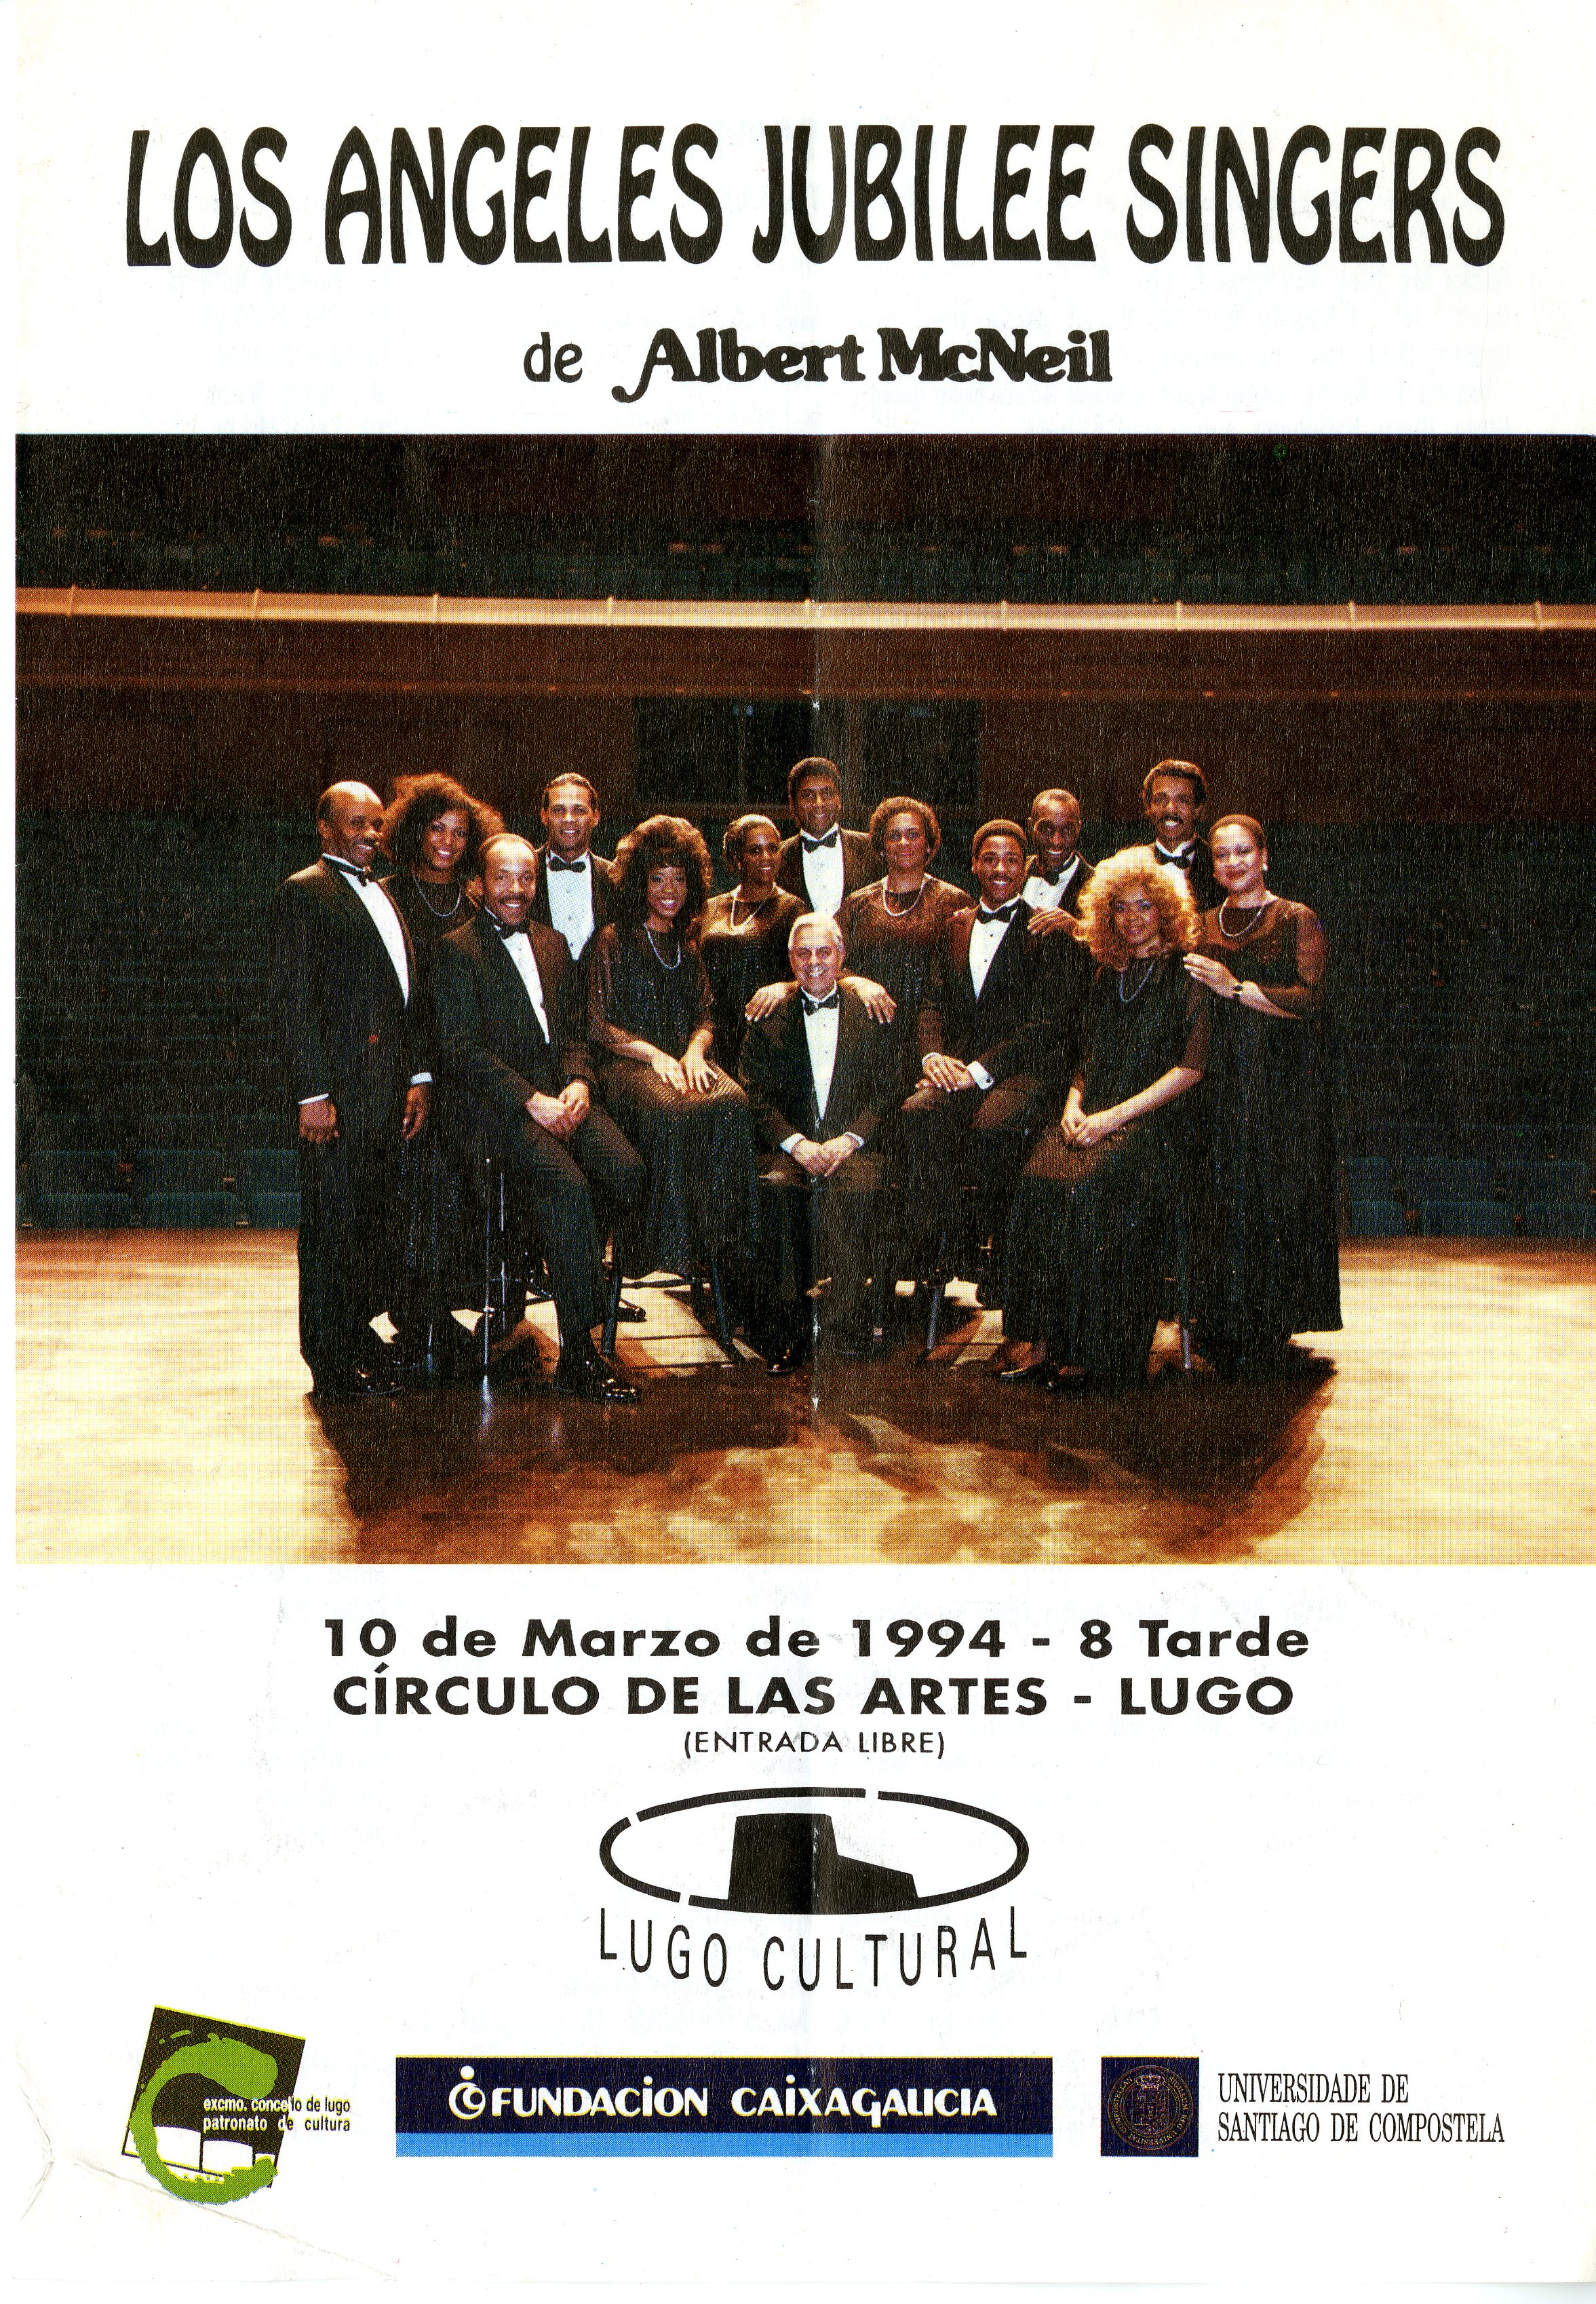 Los Angeles Jubilee Singers program